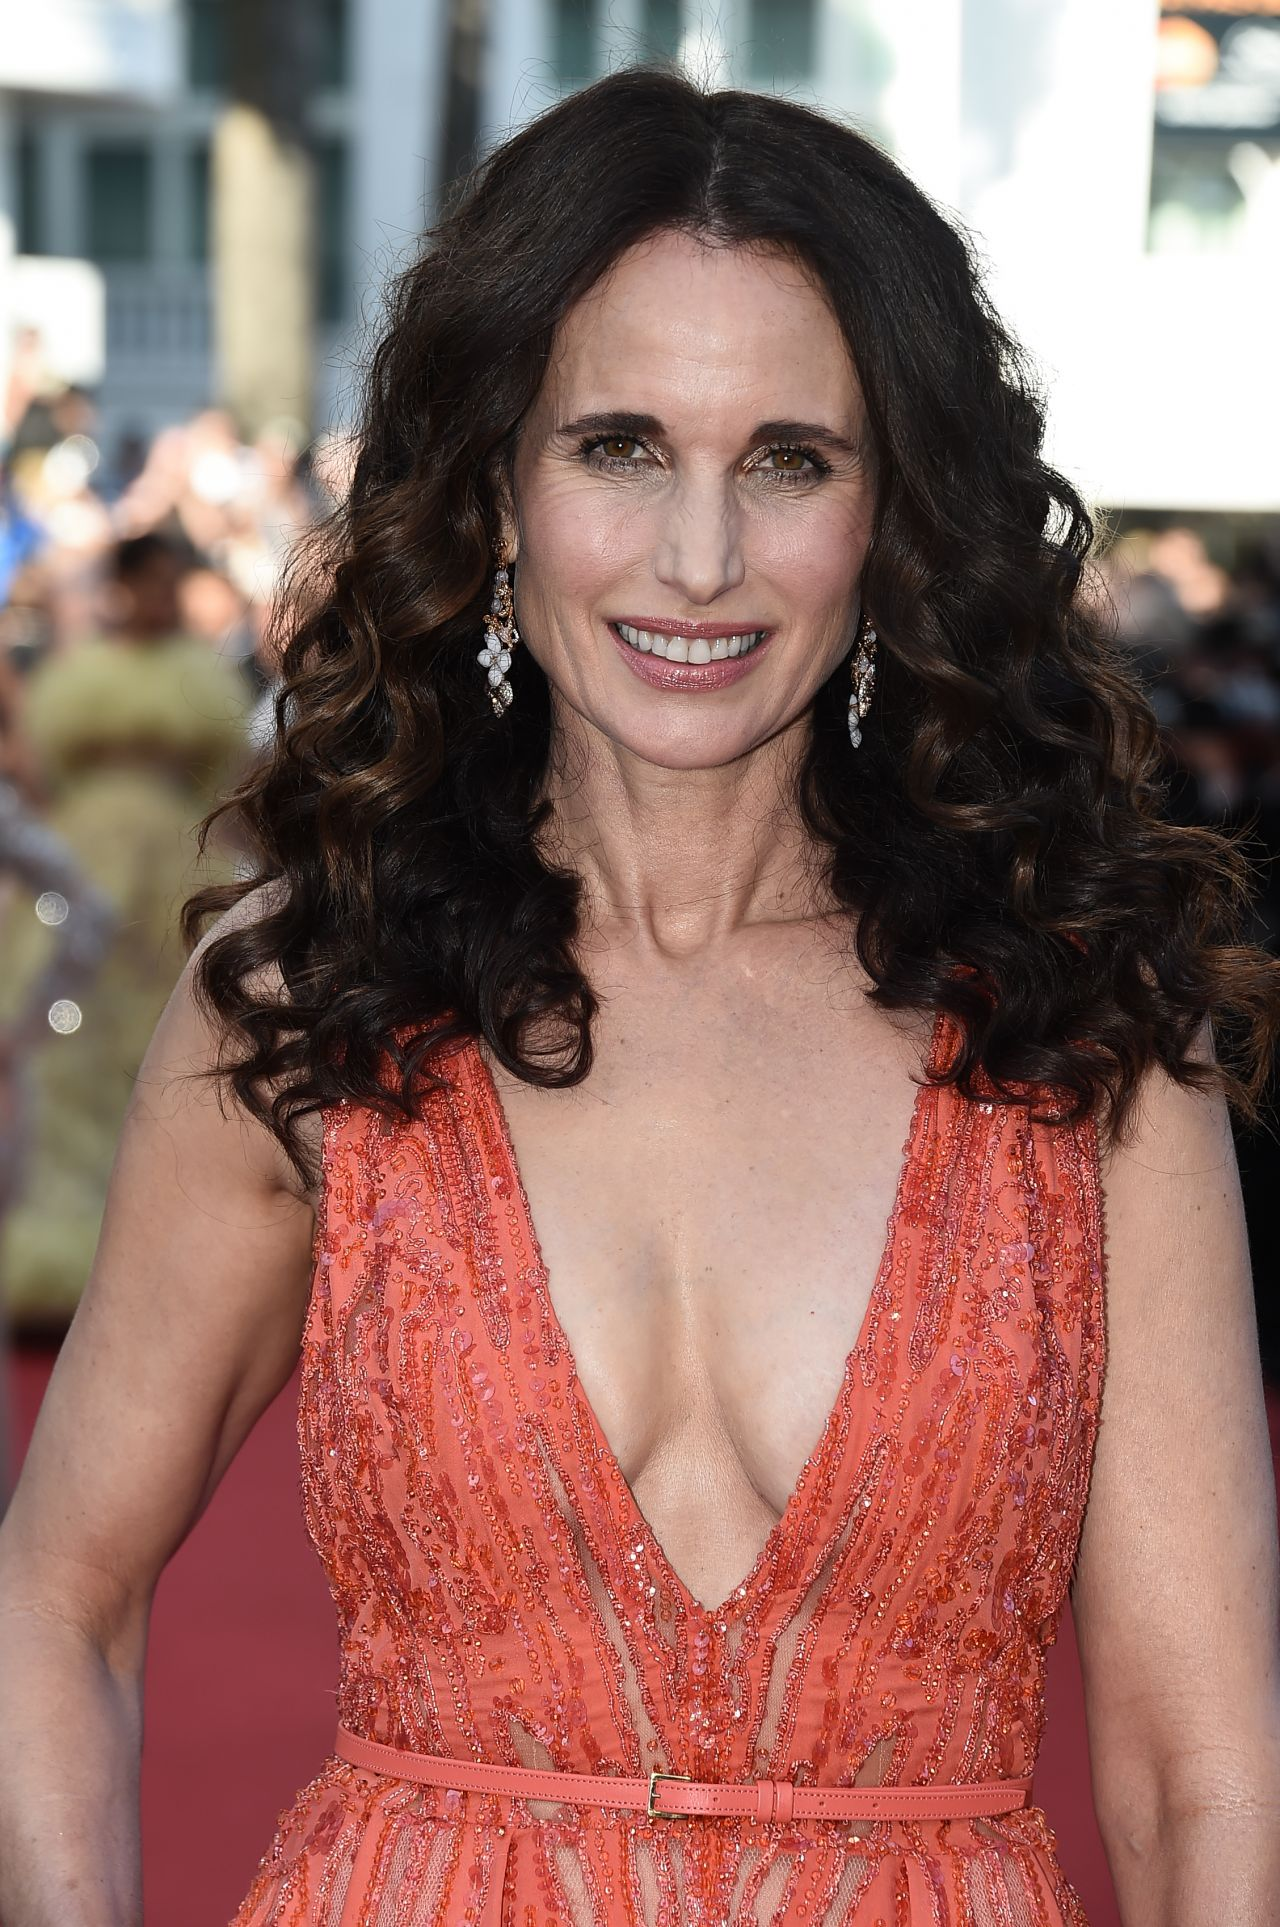 Andie Macdowell Inside Out Premiere 2015 Cannes Film